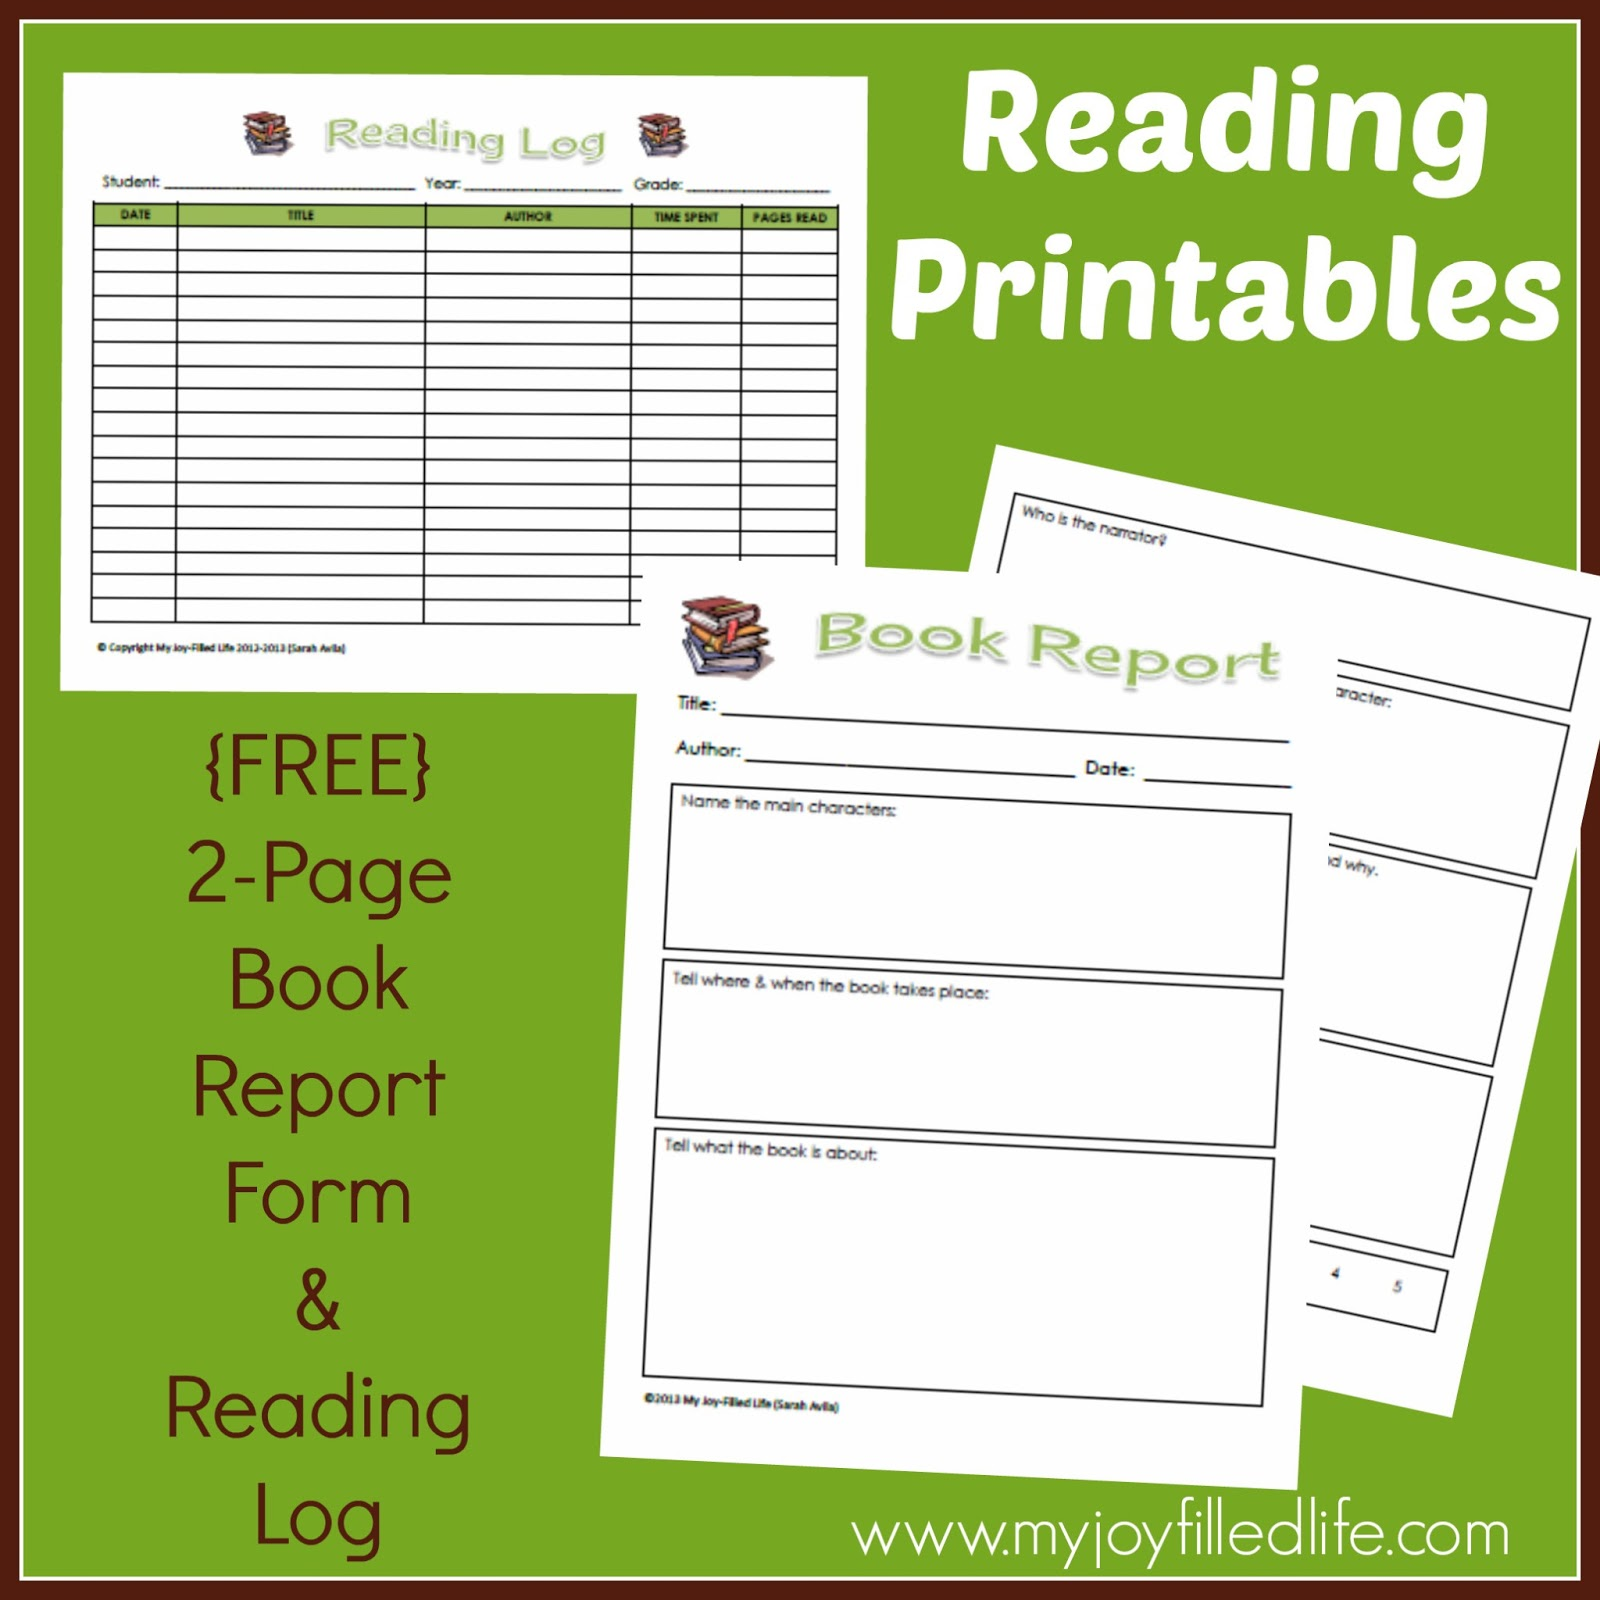 Stupendous image with regard to book log printable